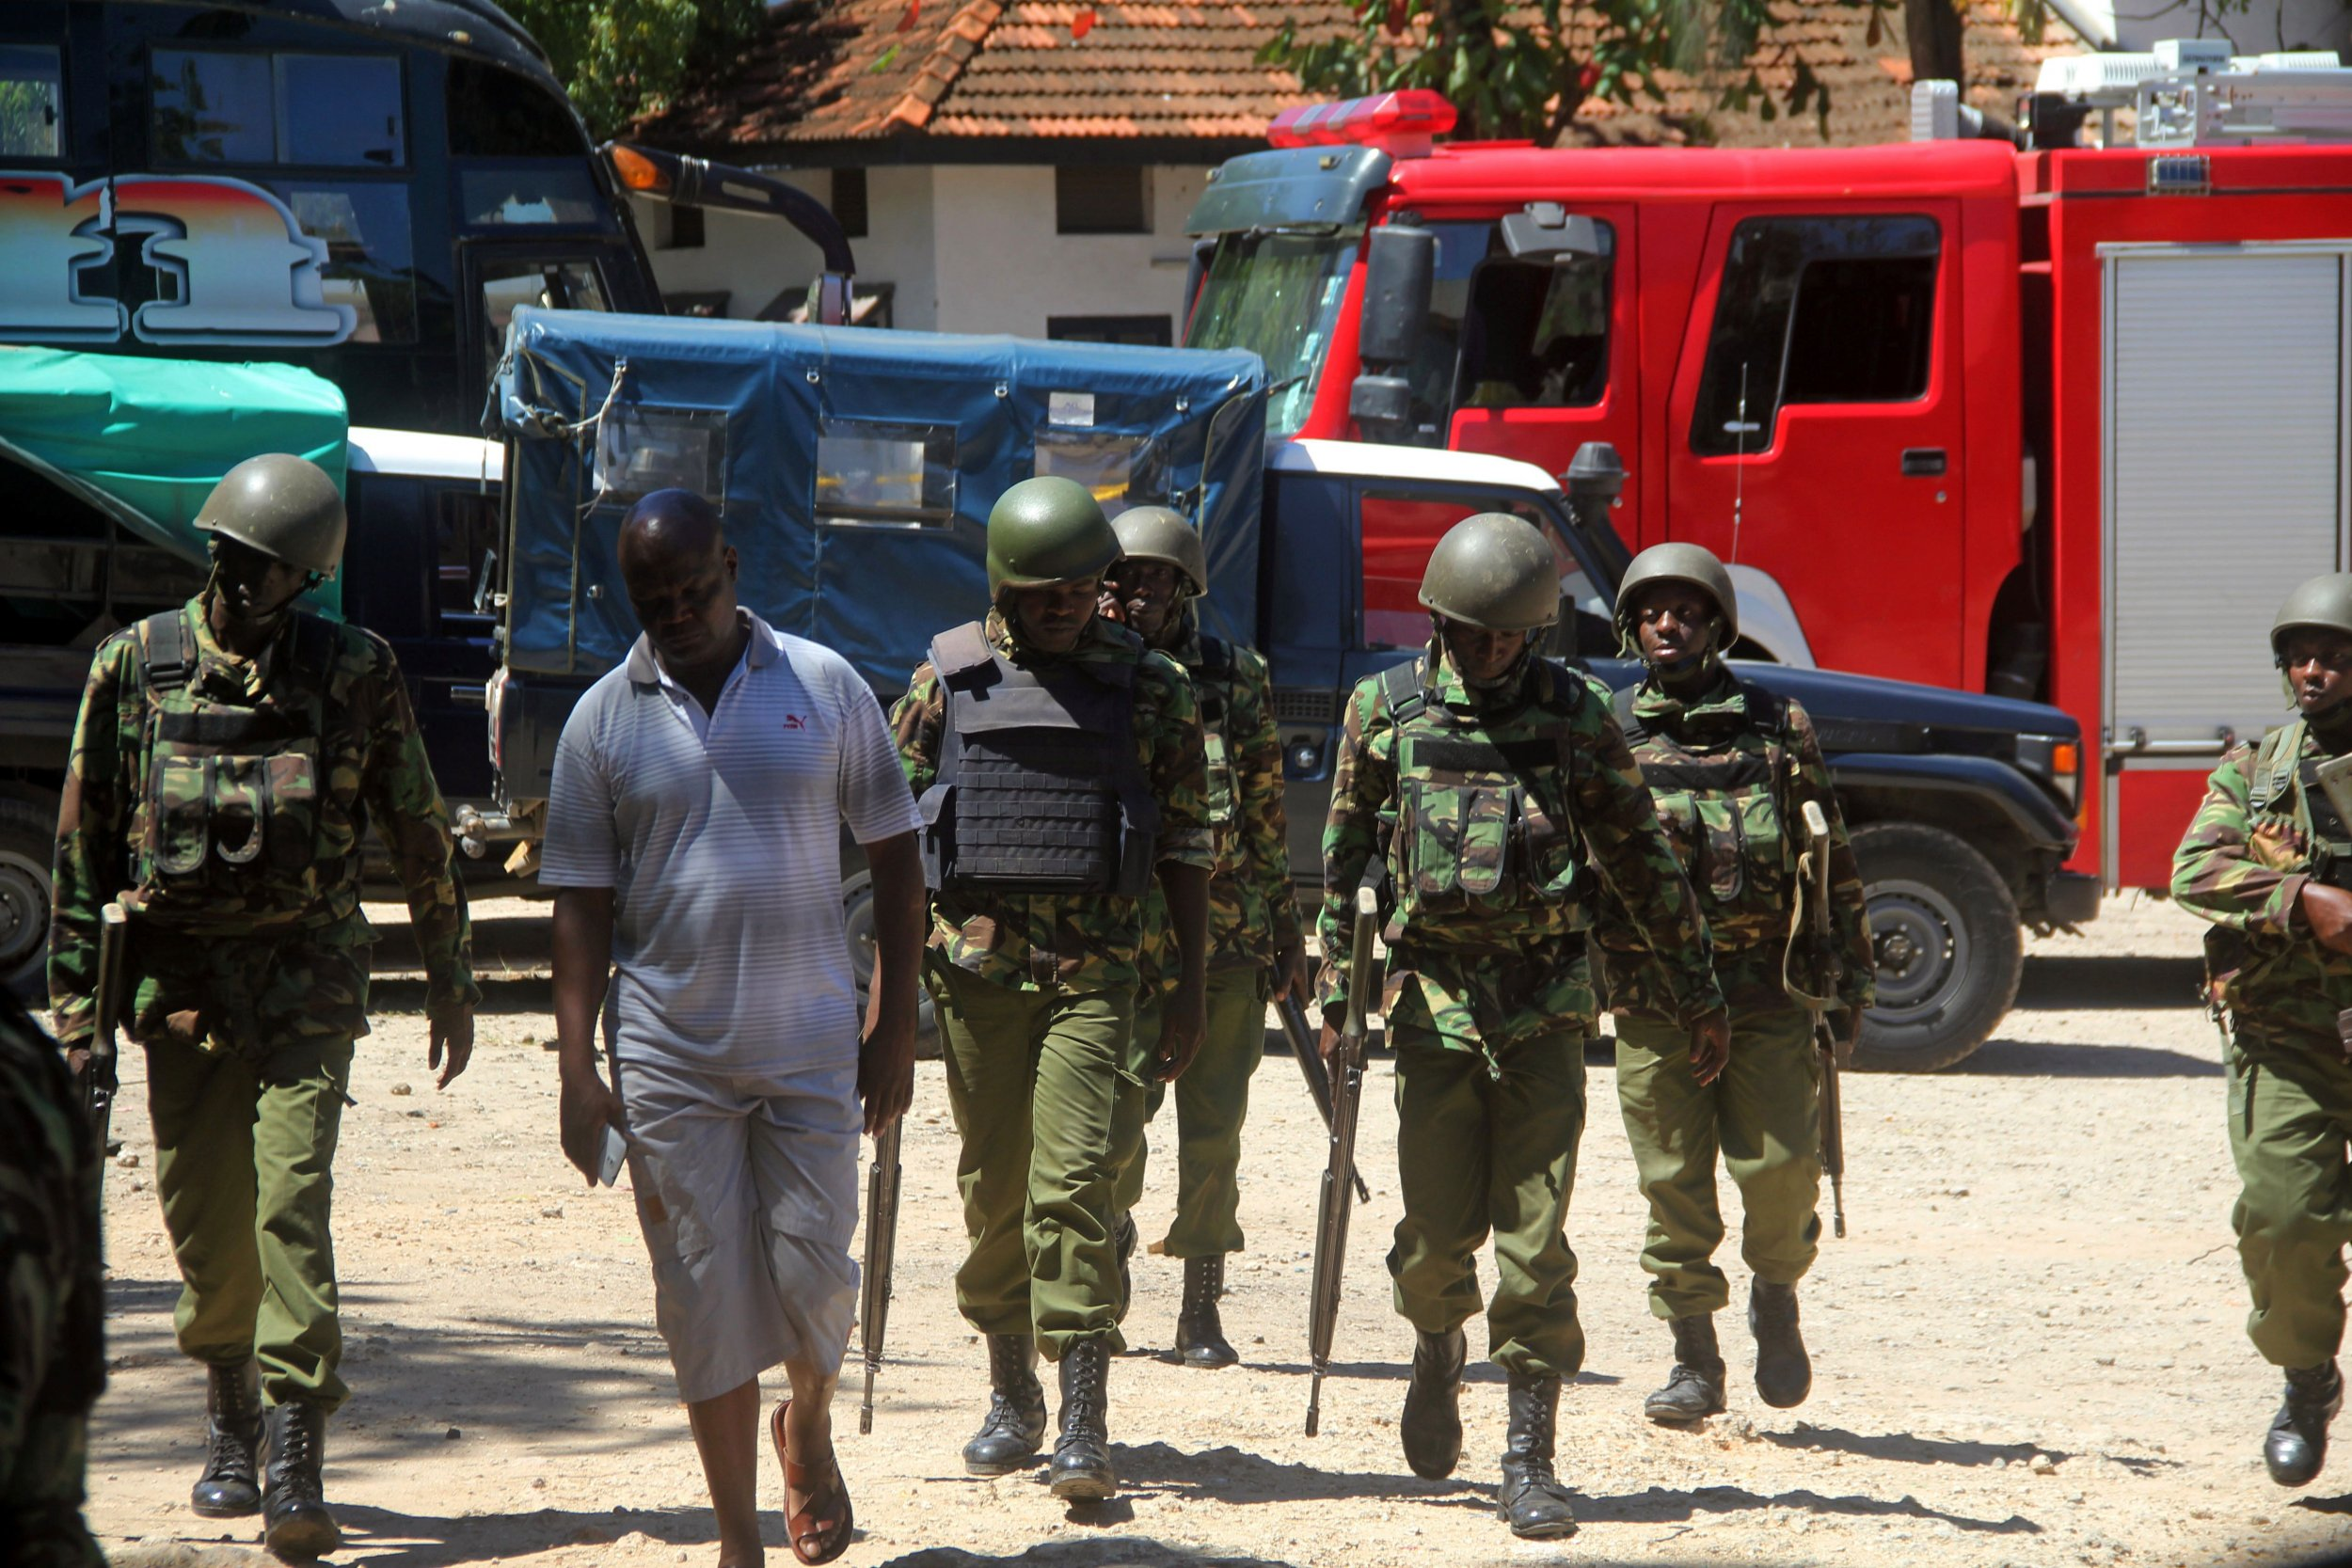 A police station in Mombasa after an attack by three women